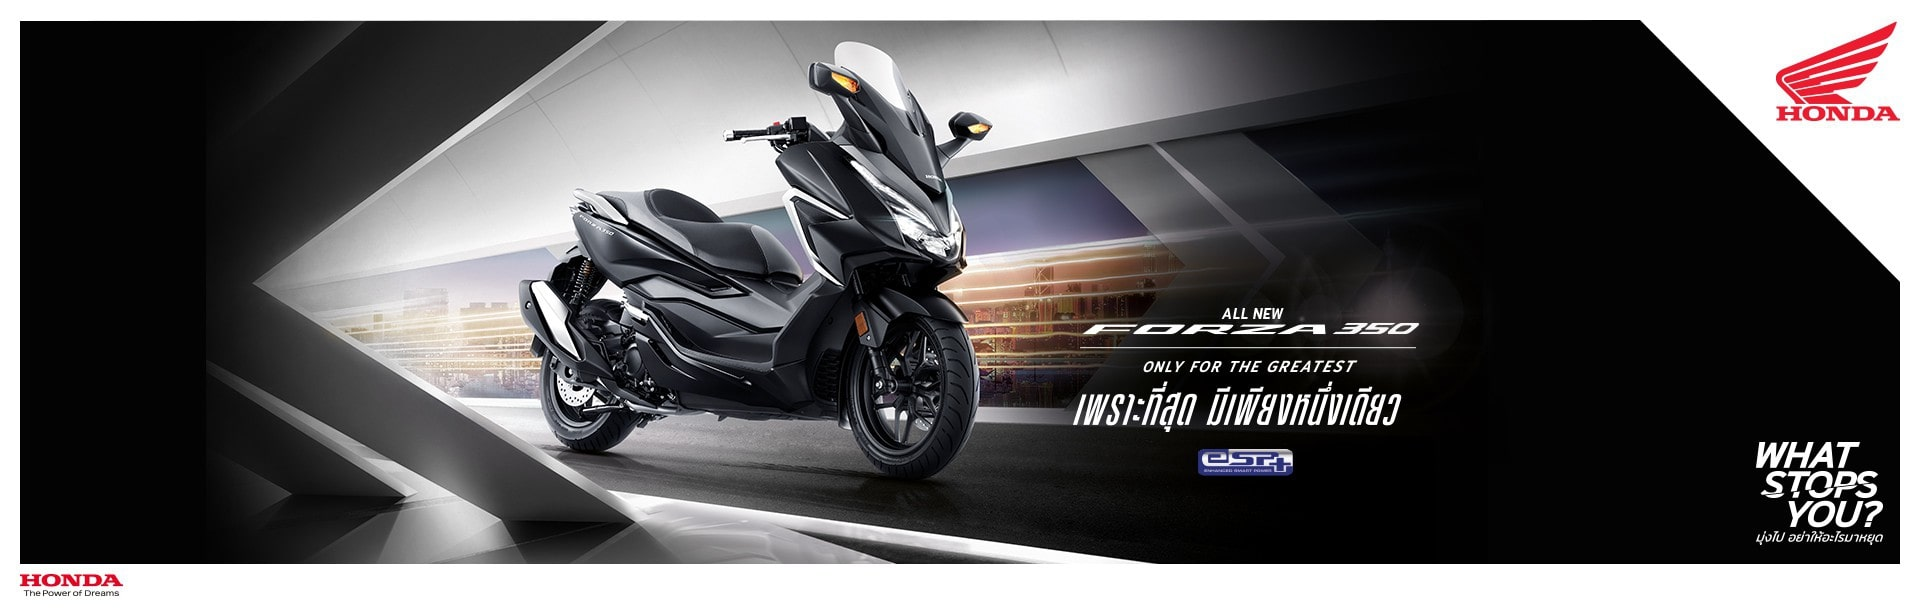 New Forza350 ปี 2020